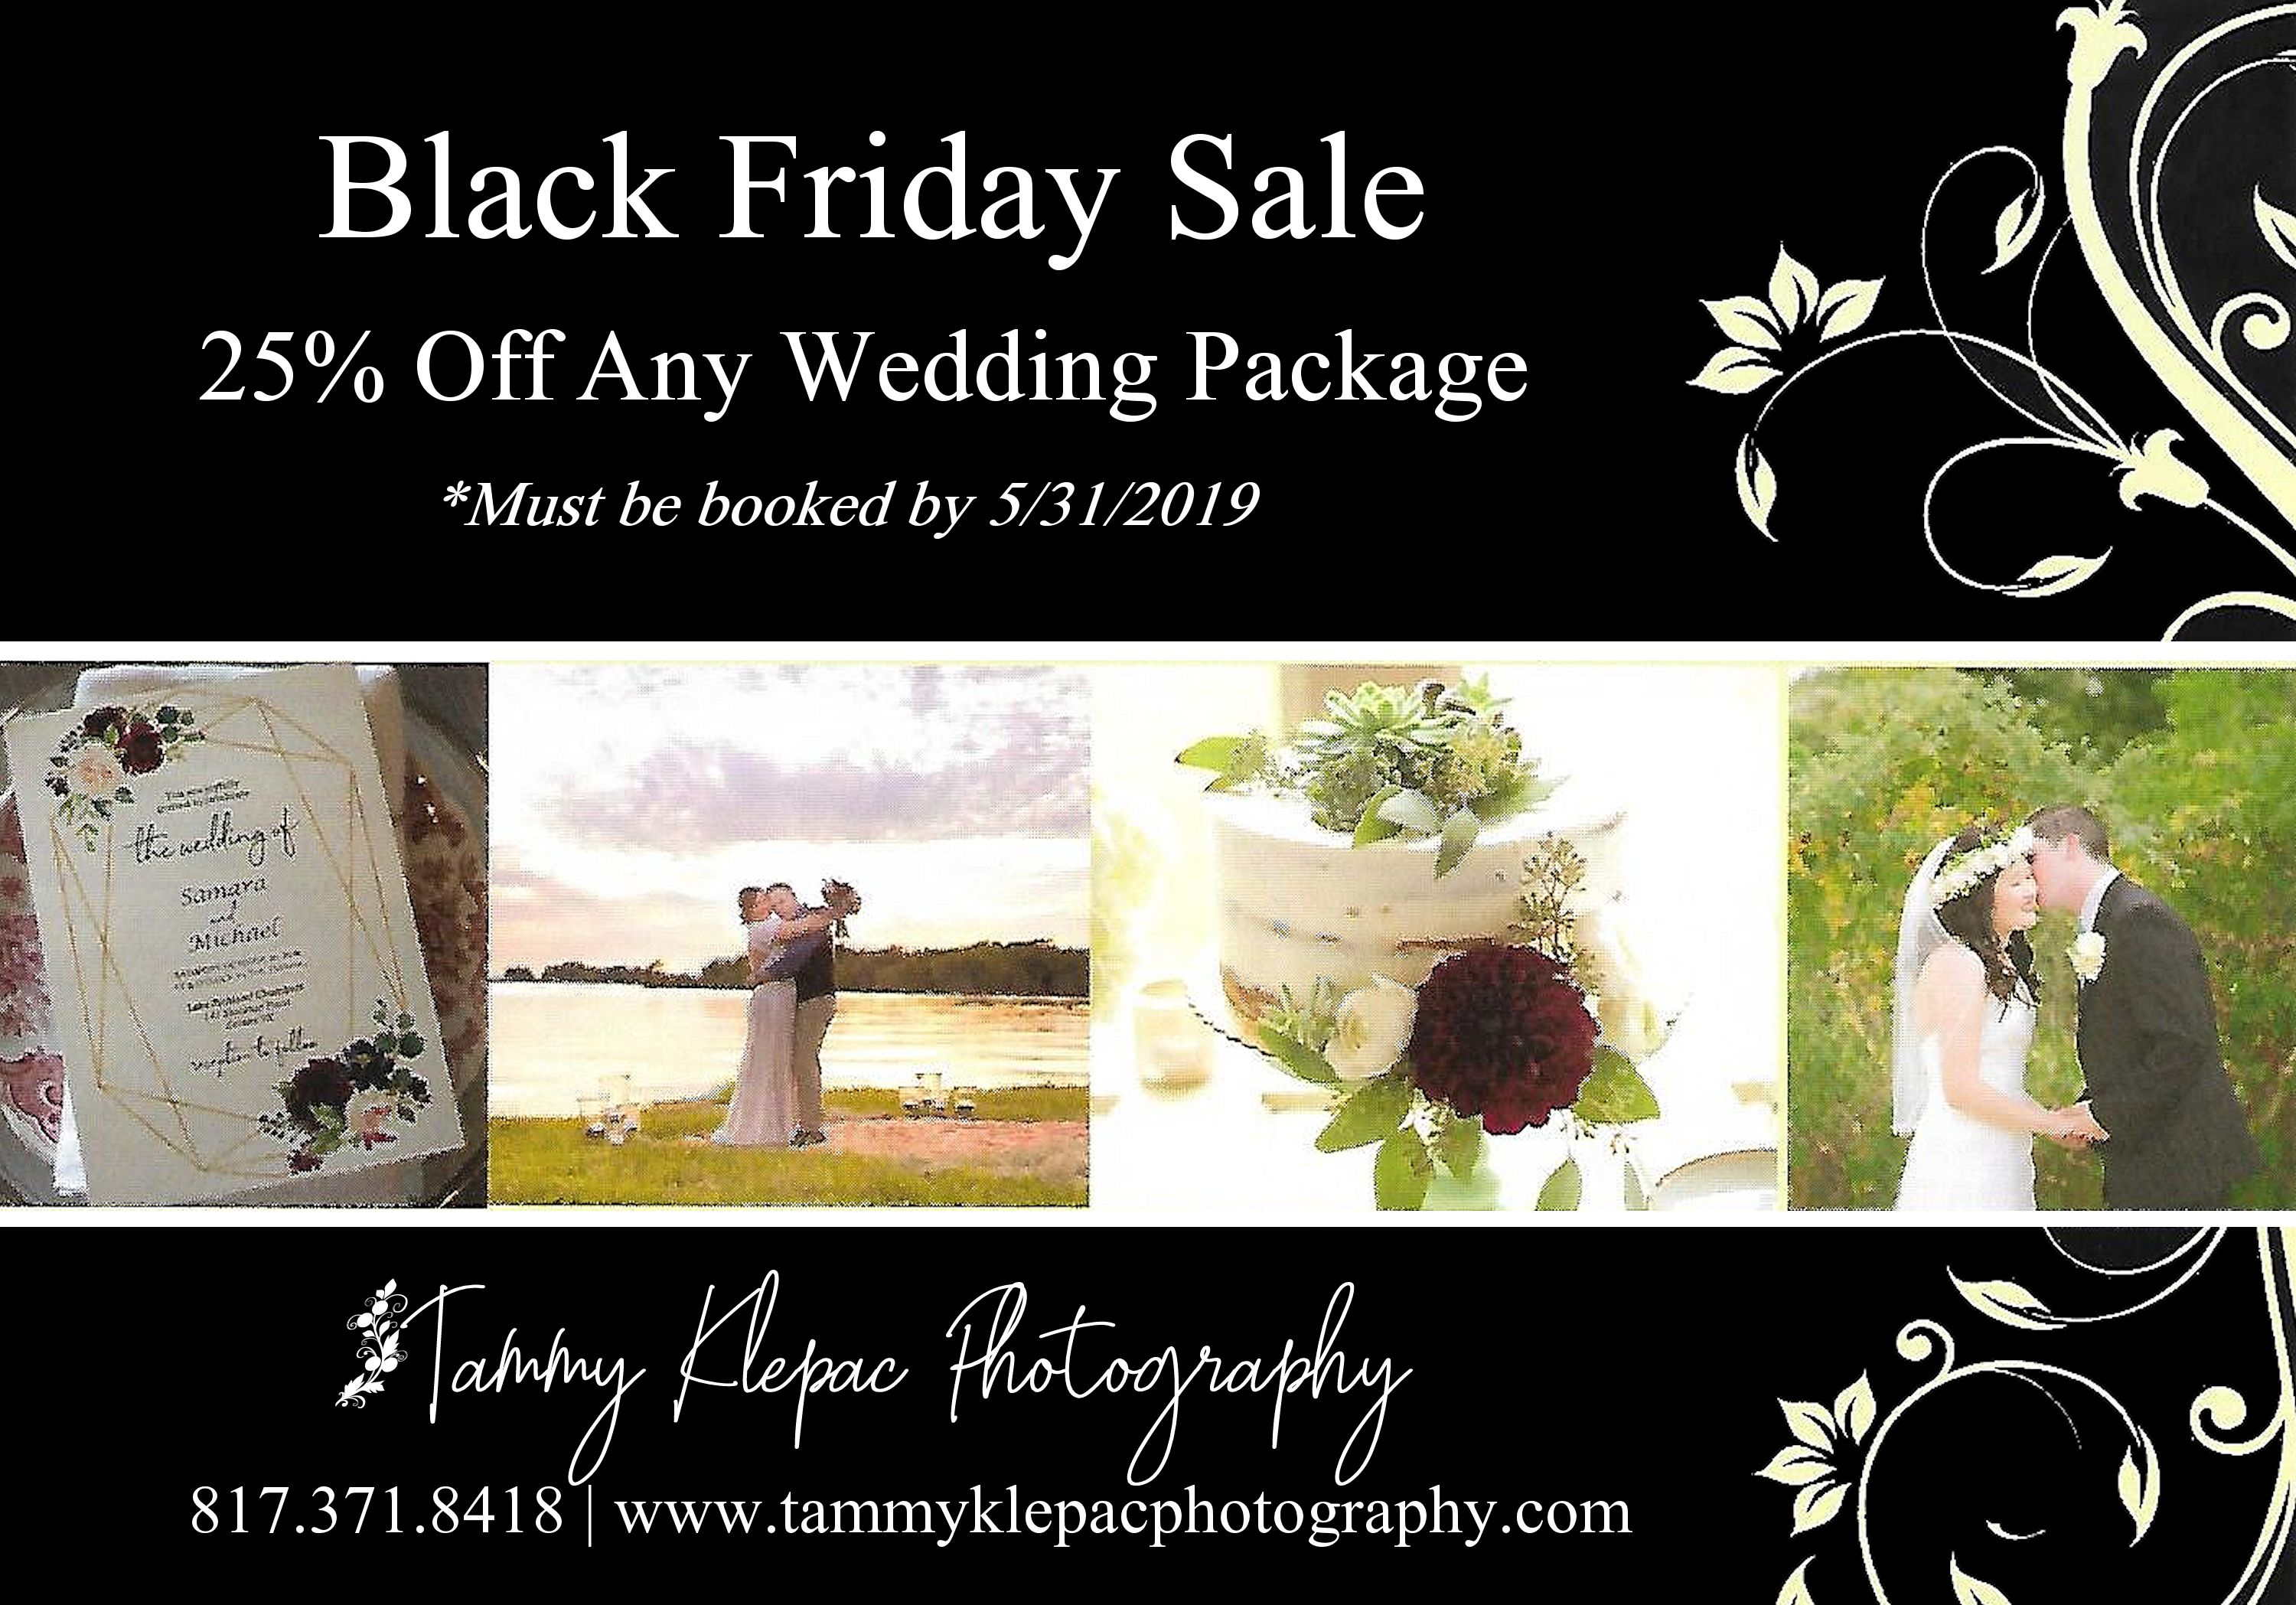 Black Friday Photography Sale Dallas Fort Worth Area Photographer Offering 25 Off Wedding Packa Black Friday Photography Photography For Sale Wedding Package